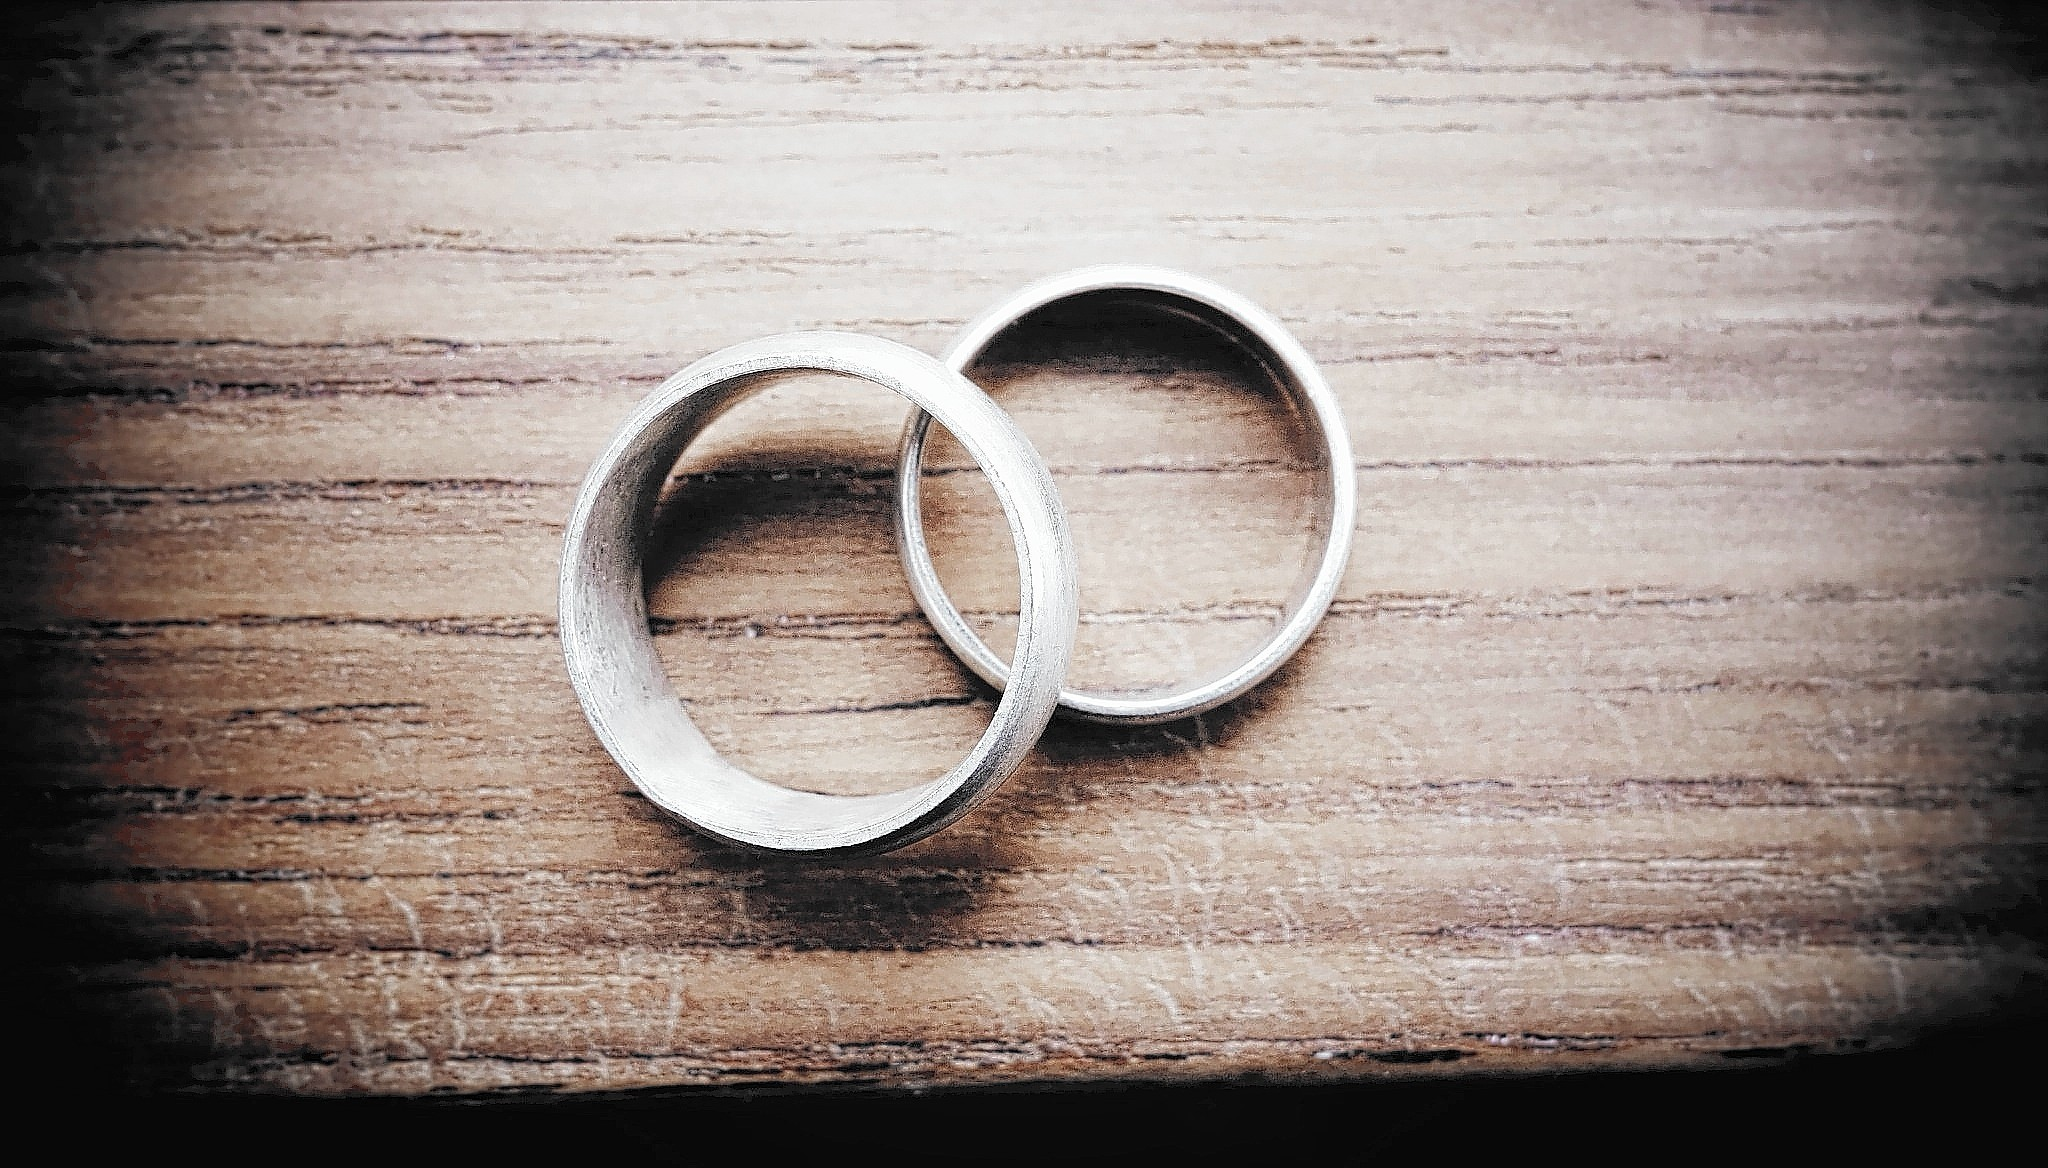 marriage in the 21st century essay Open document below is an essay on is marriage important in 21st century from anti essays, your source for research papers, essays, and term paper examples.